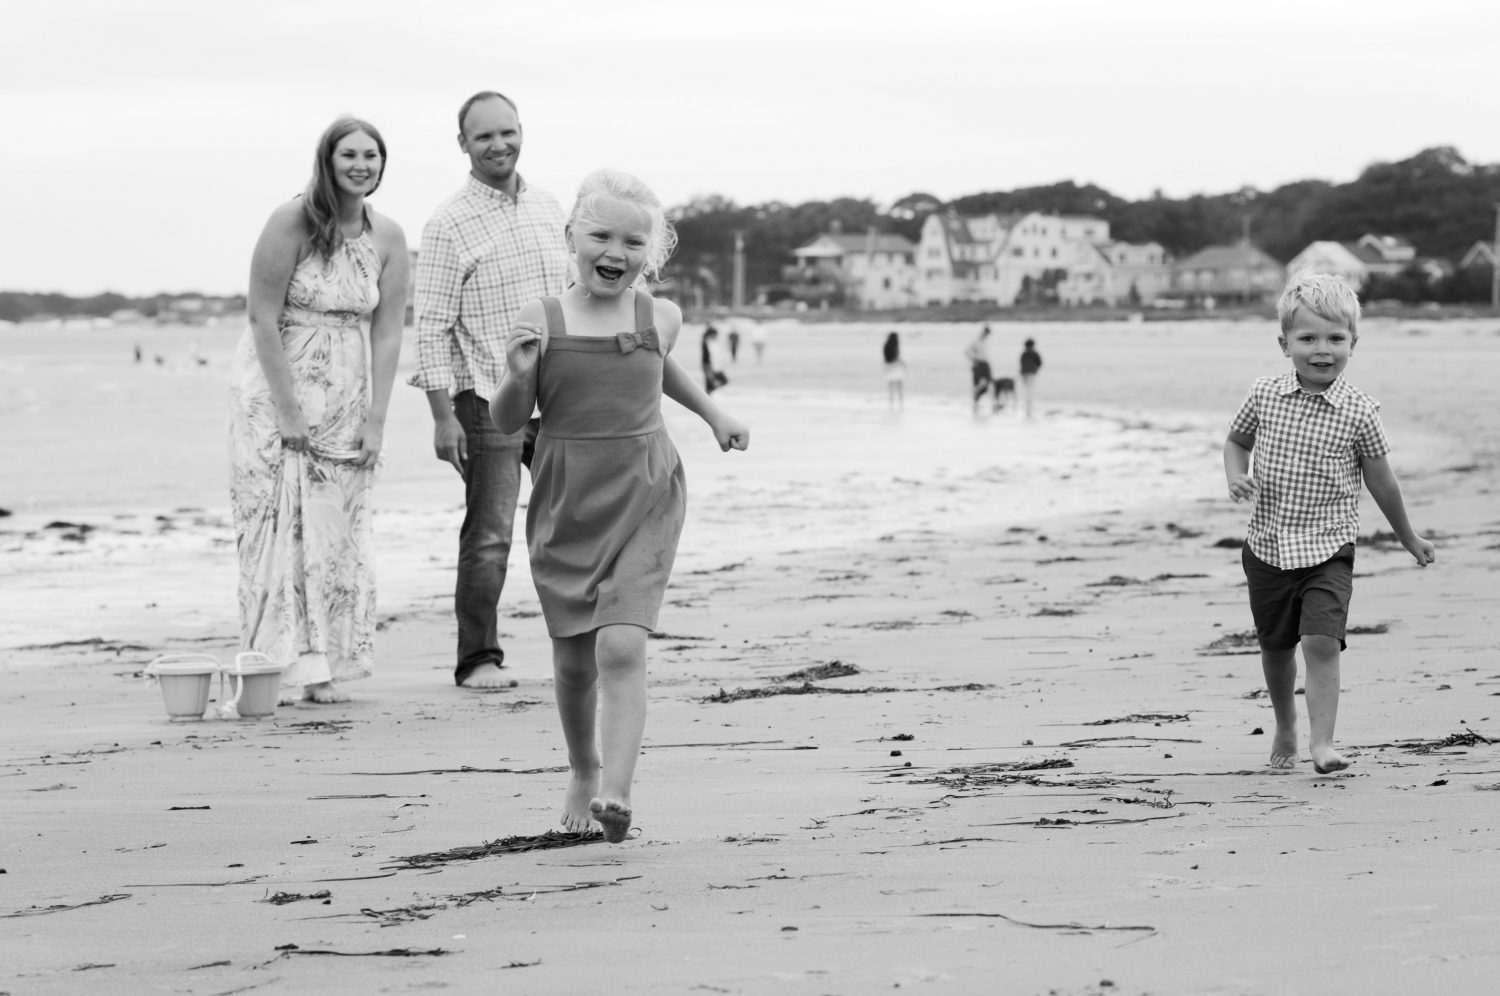 black and white image of young children running on the beach while parents watch